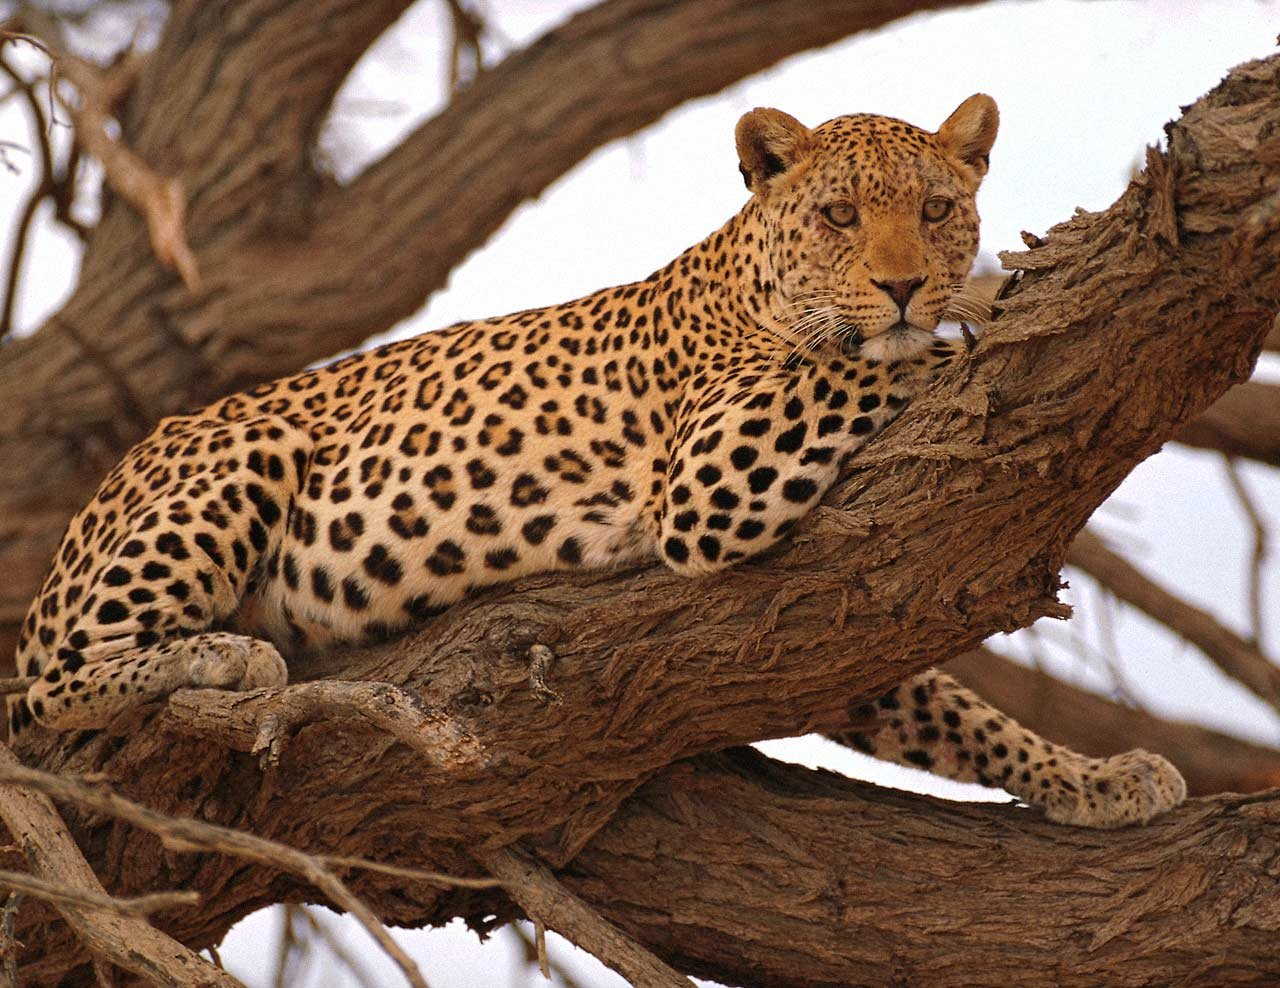 Wild Cats: The Leopard – kimcampion.com